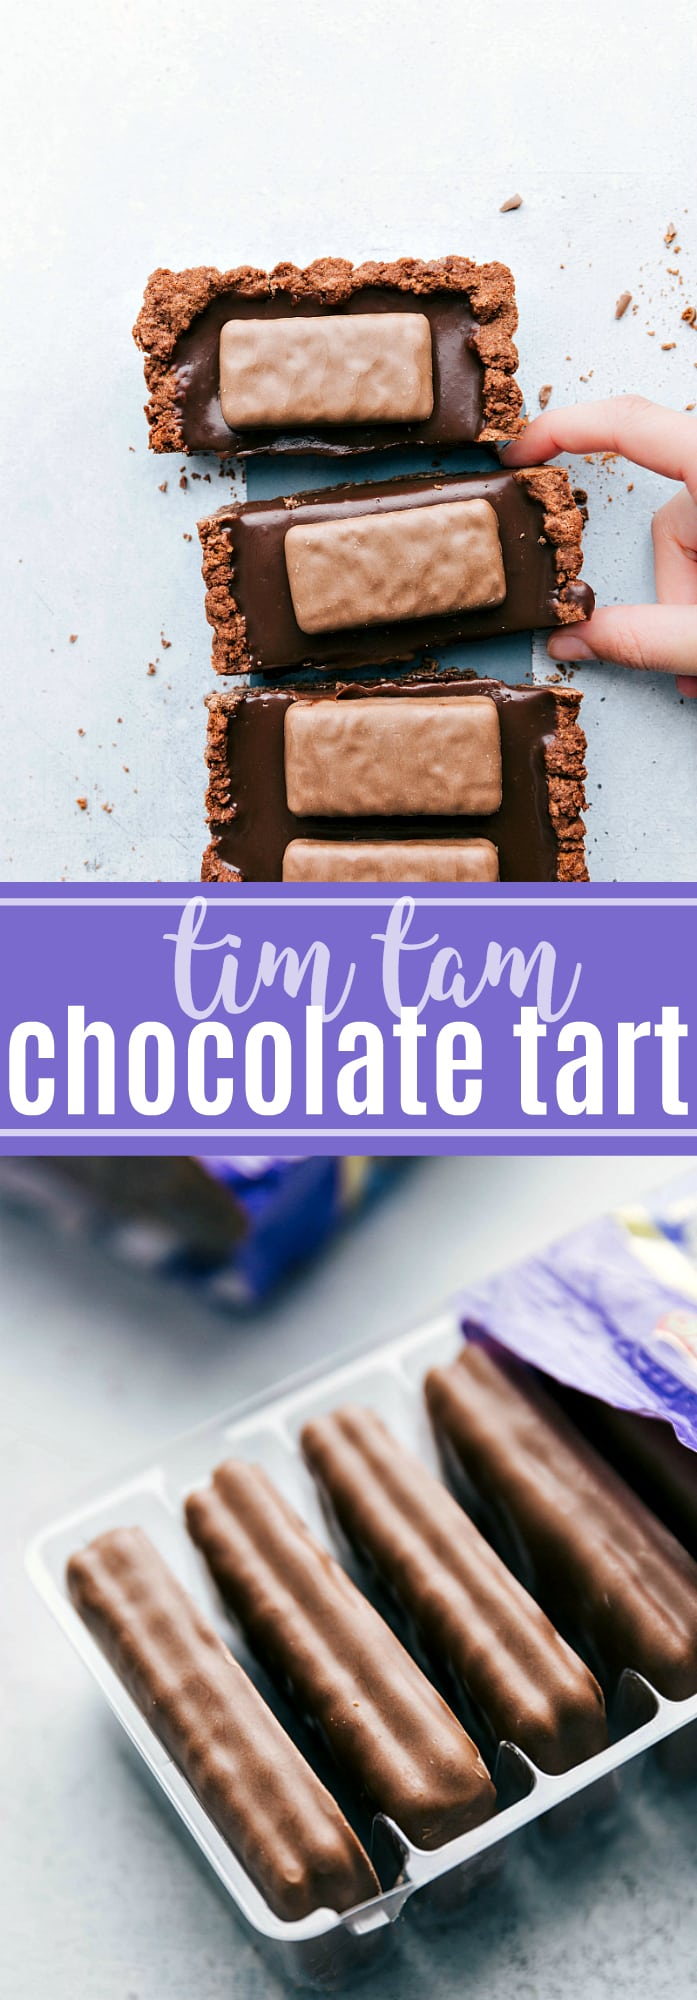 A classic summer recipe reinvented: no-bake chocolate tart with Tim Tam® biscuits! via chelseasmessyapron.com #chocolate #tart #desserts #dessert #easy #quick